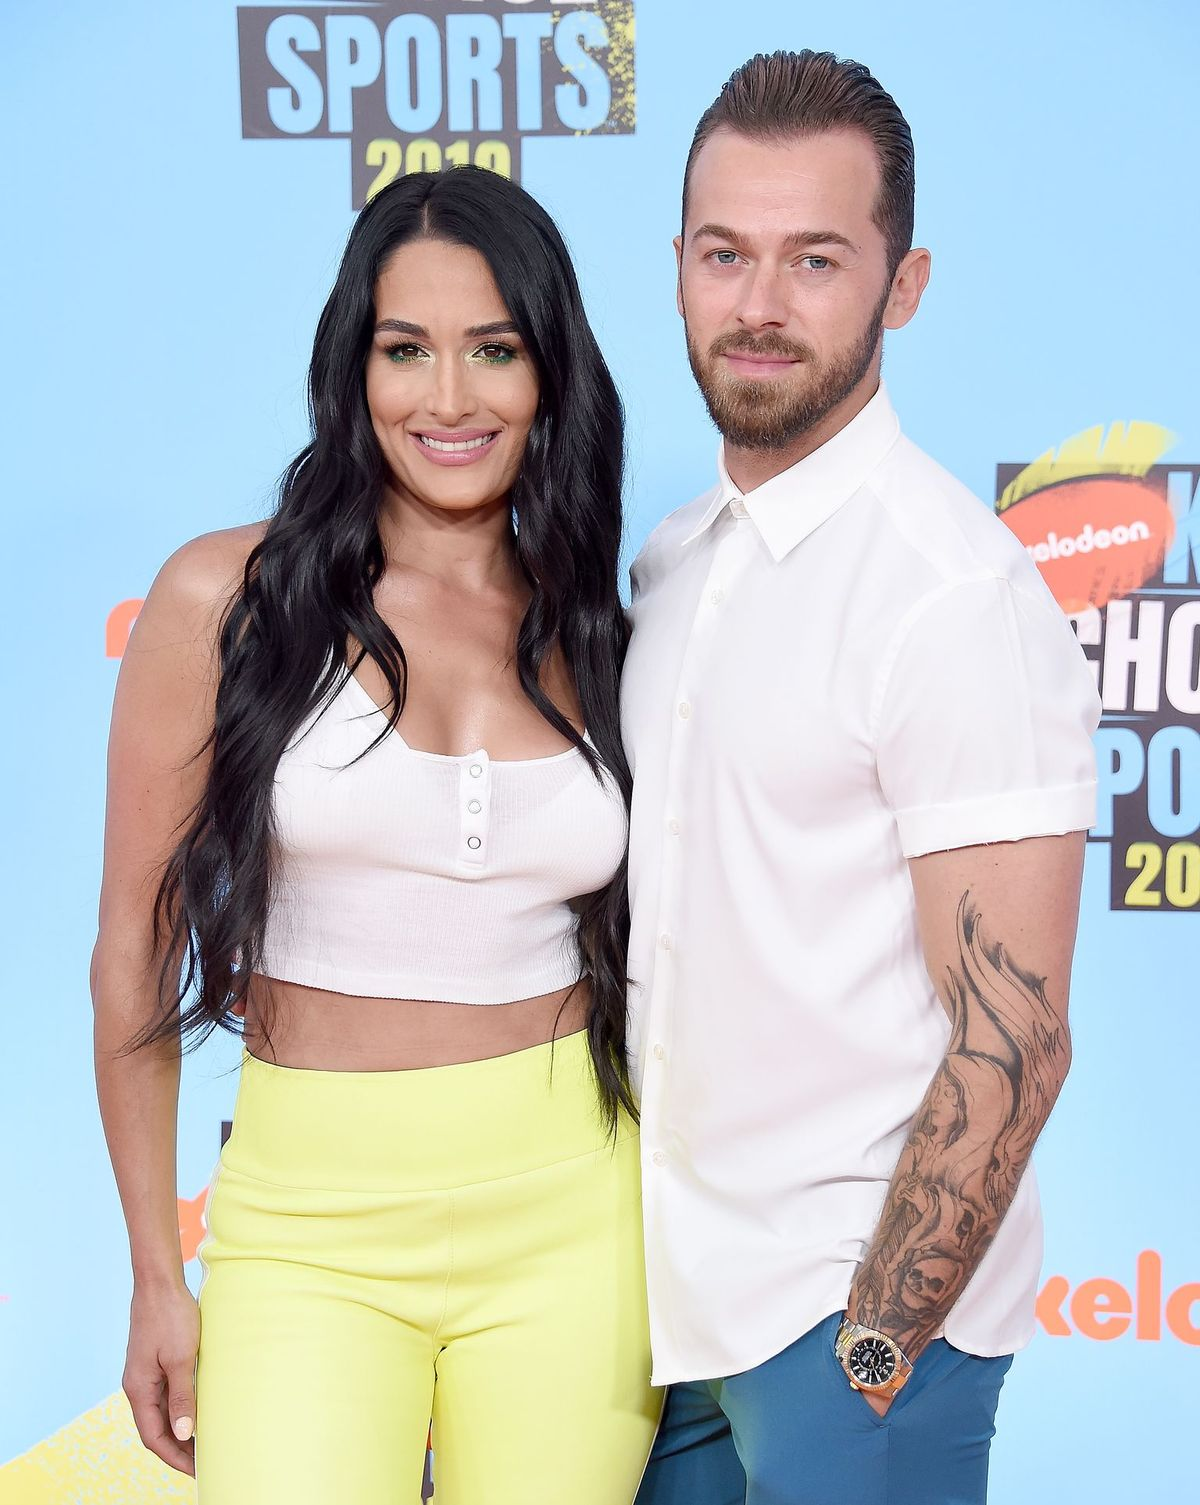 Nikki Bella and Artem Chigvintsev at the Nickelodeon Kids' Choice Sports 2019 at Barker Hangar on July 11, 2019 in Santa Monica, California | Photo: Getty Images